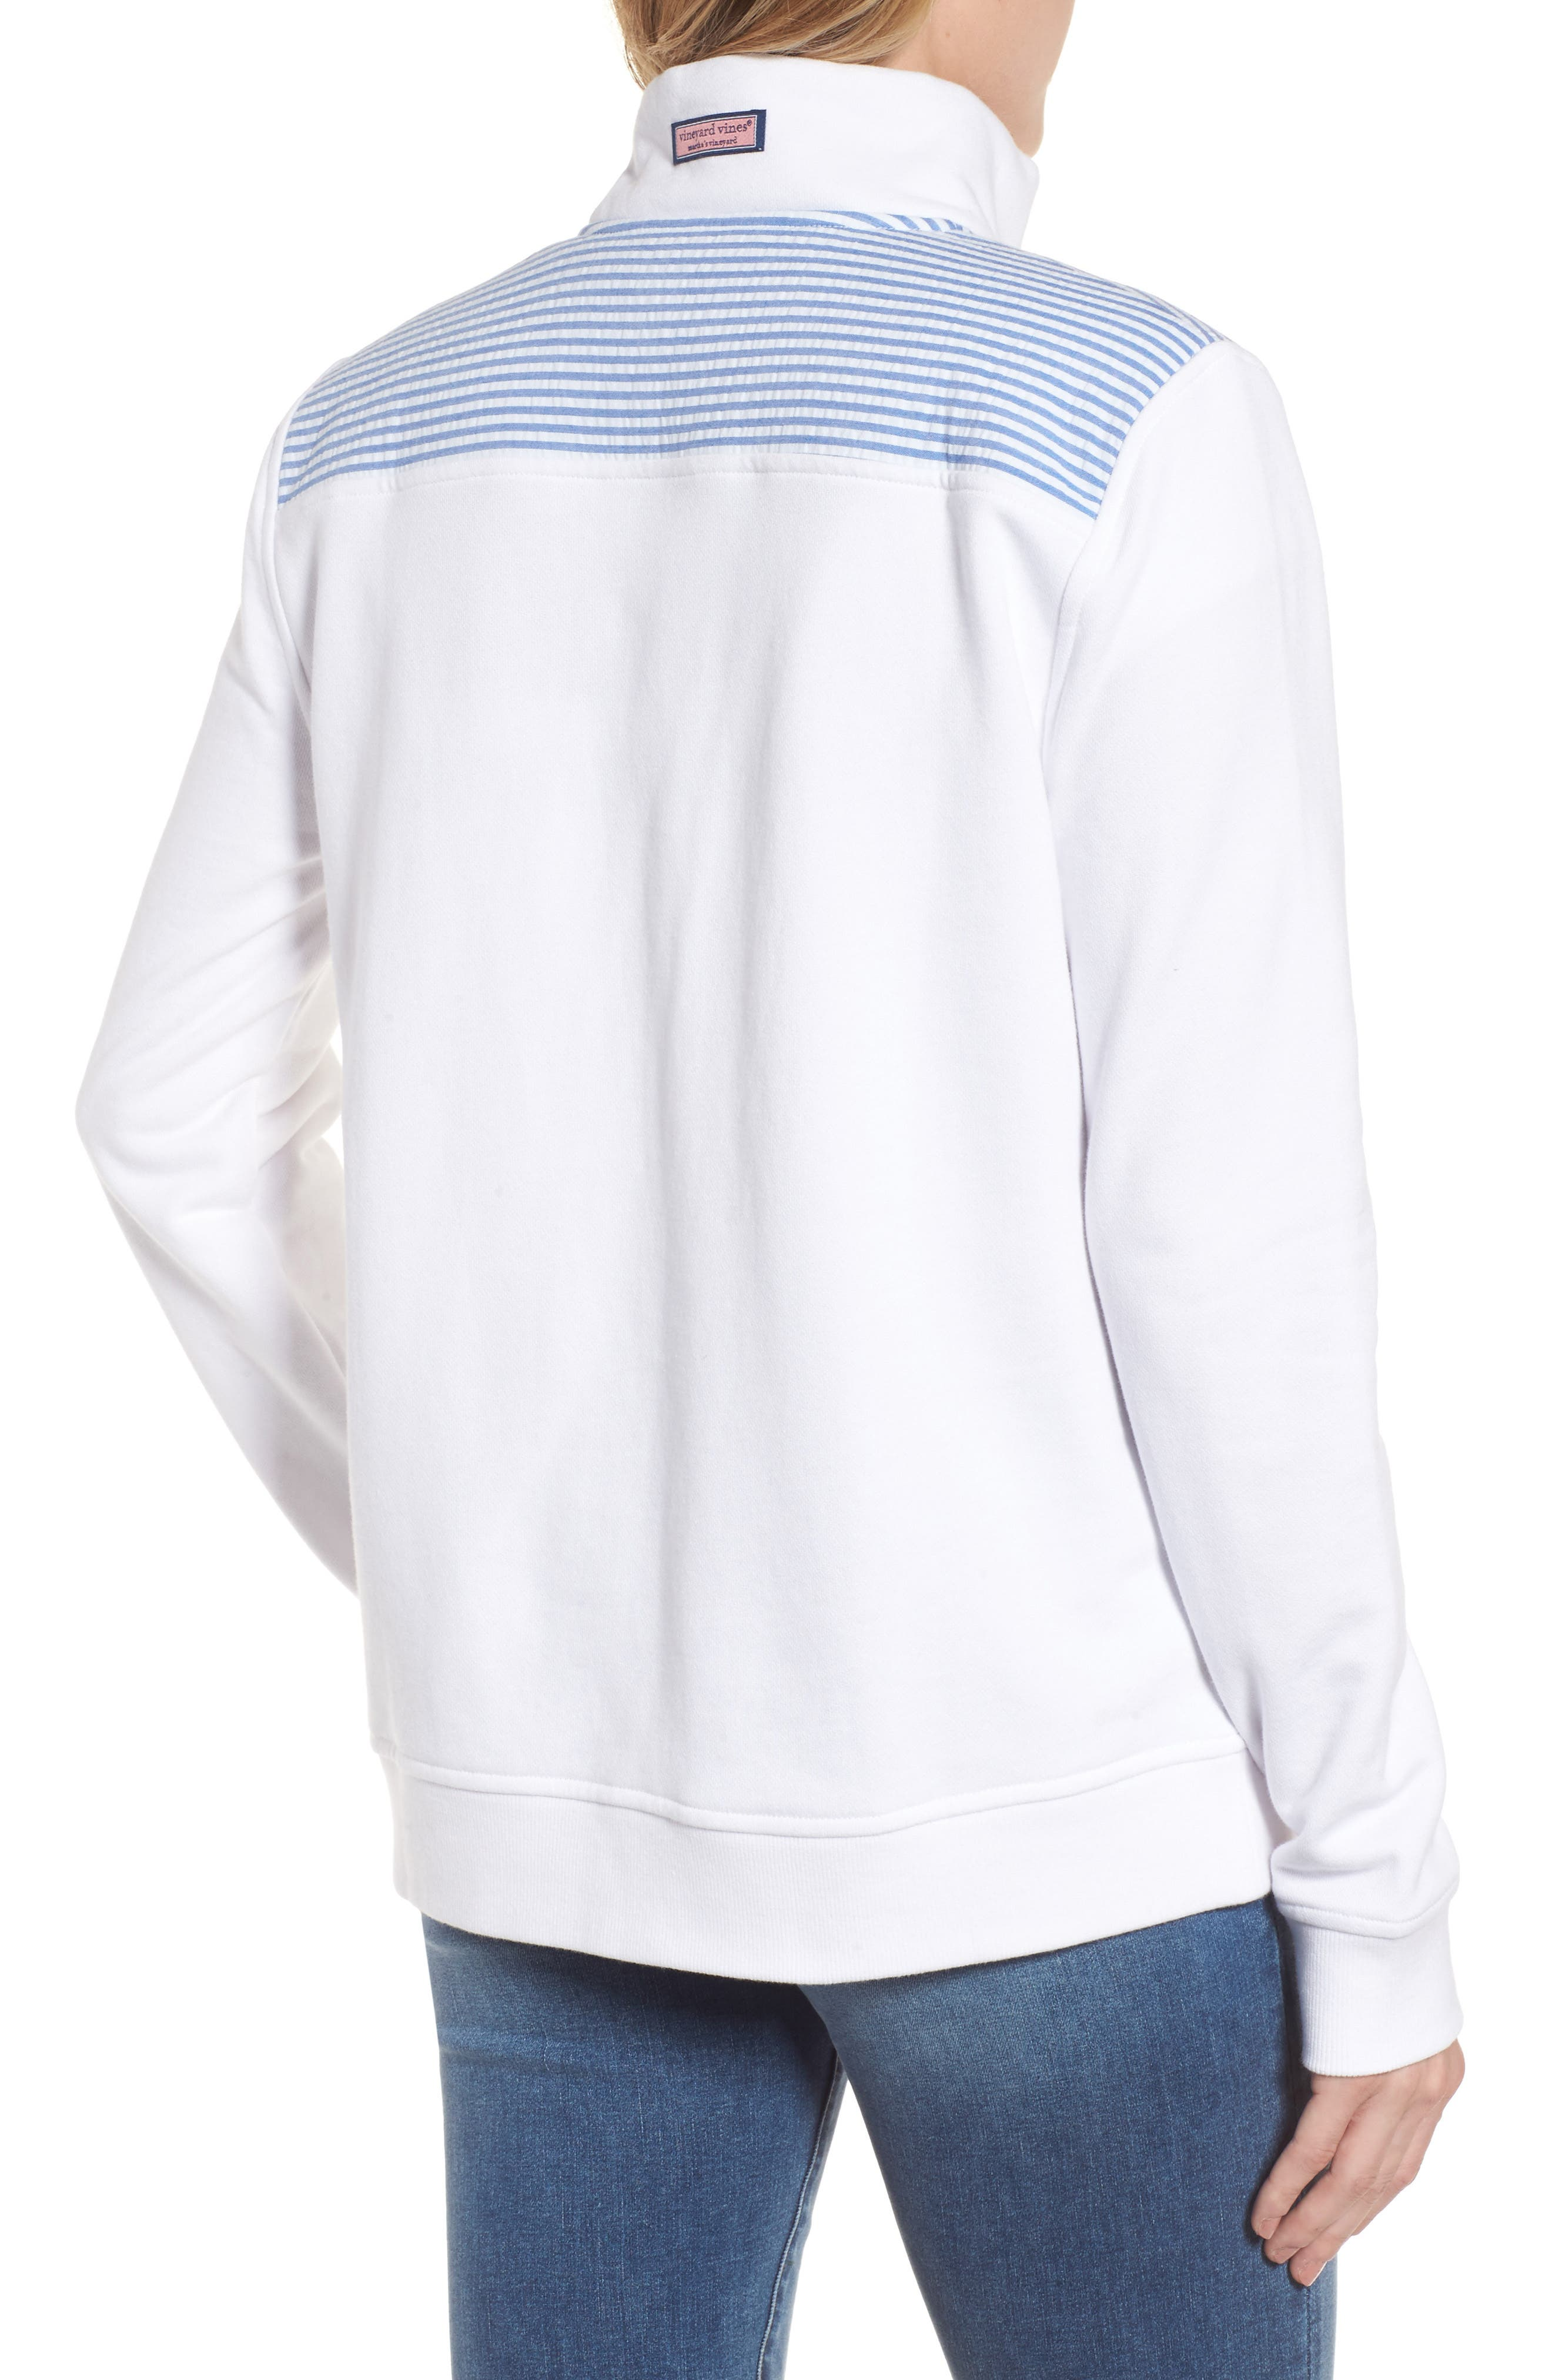 Alternate Image 2  - vineyard vines Shep Quarter Zip Pullover